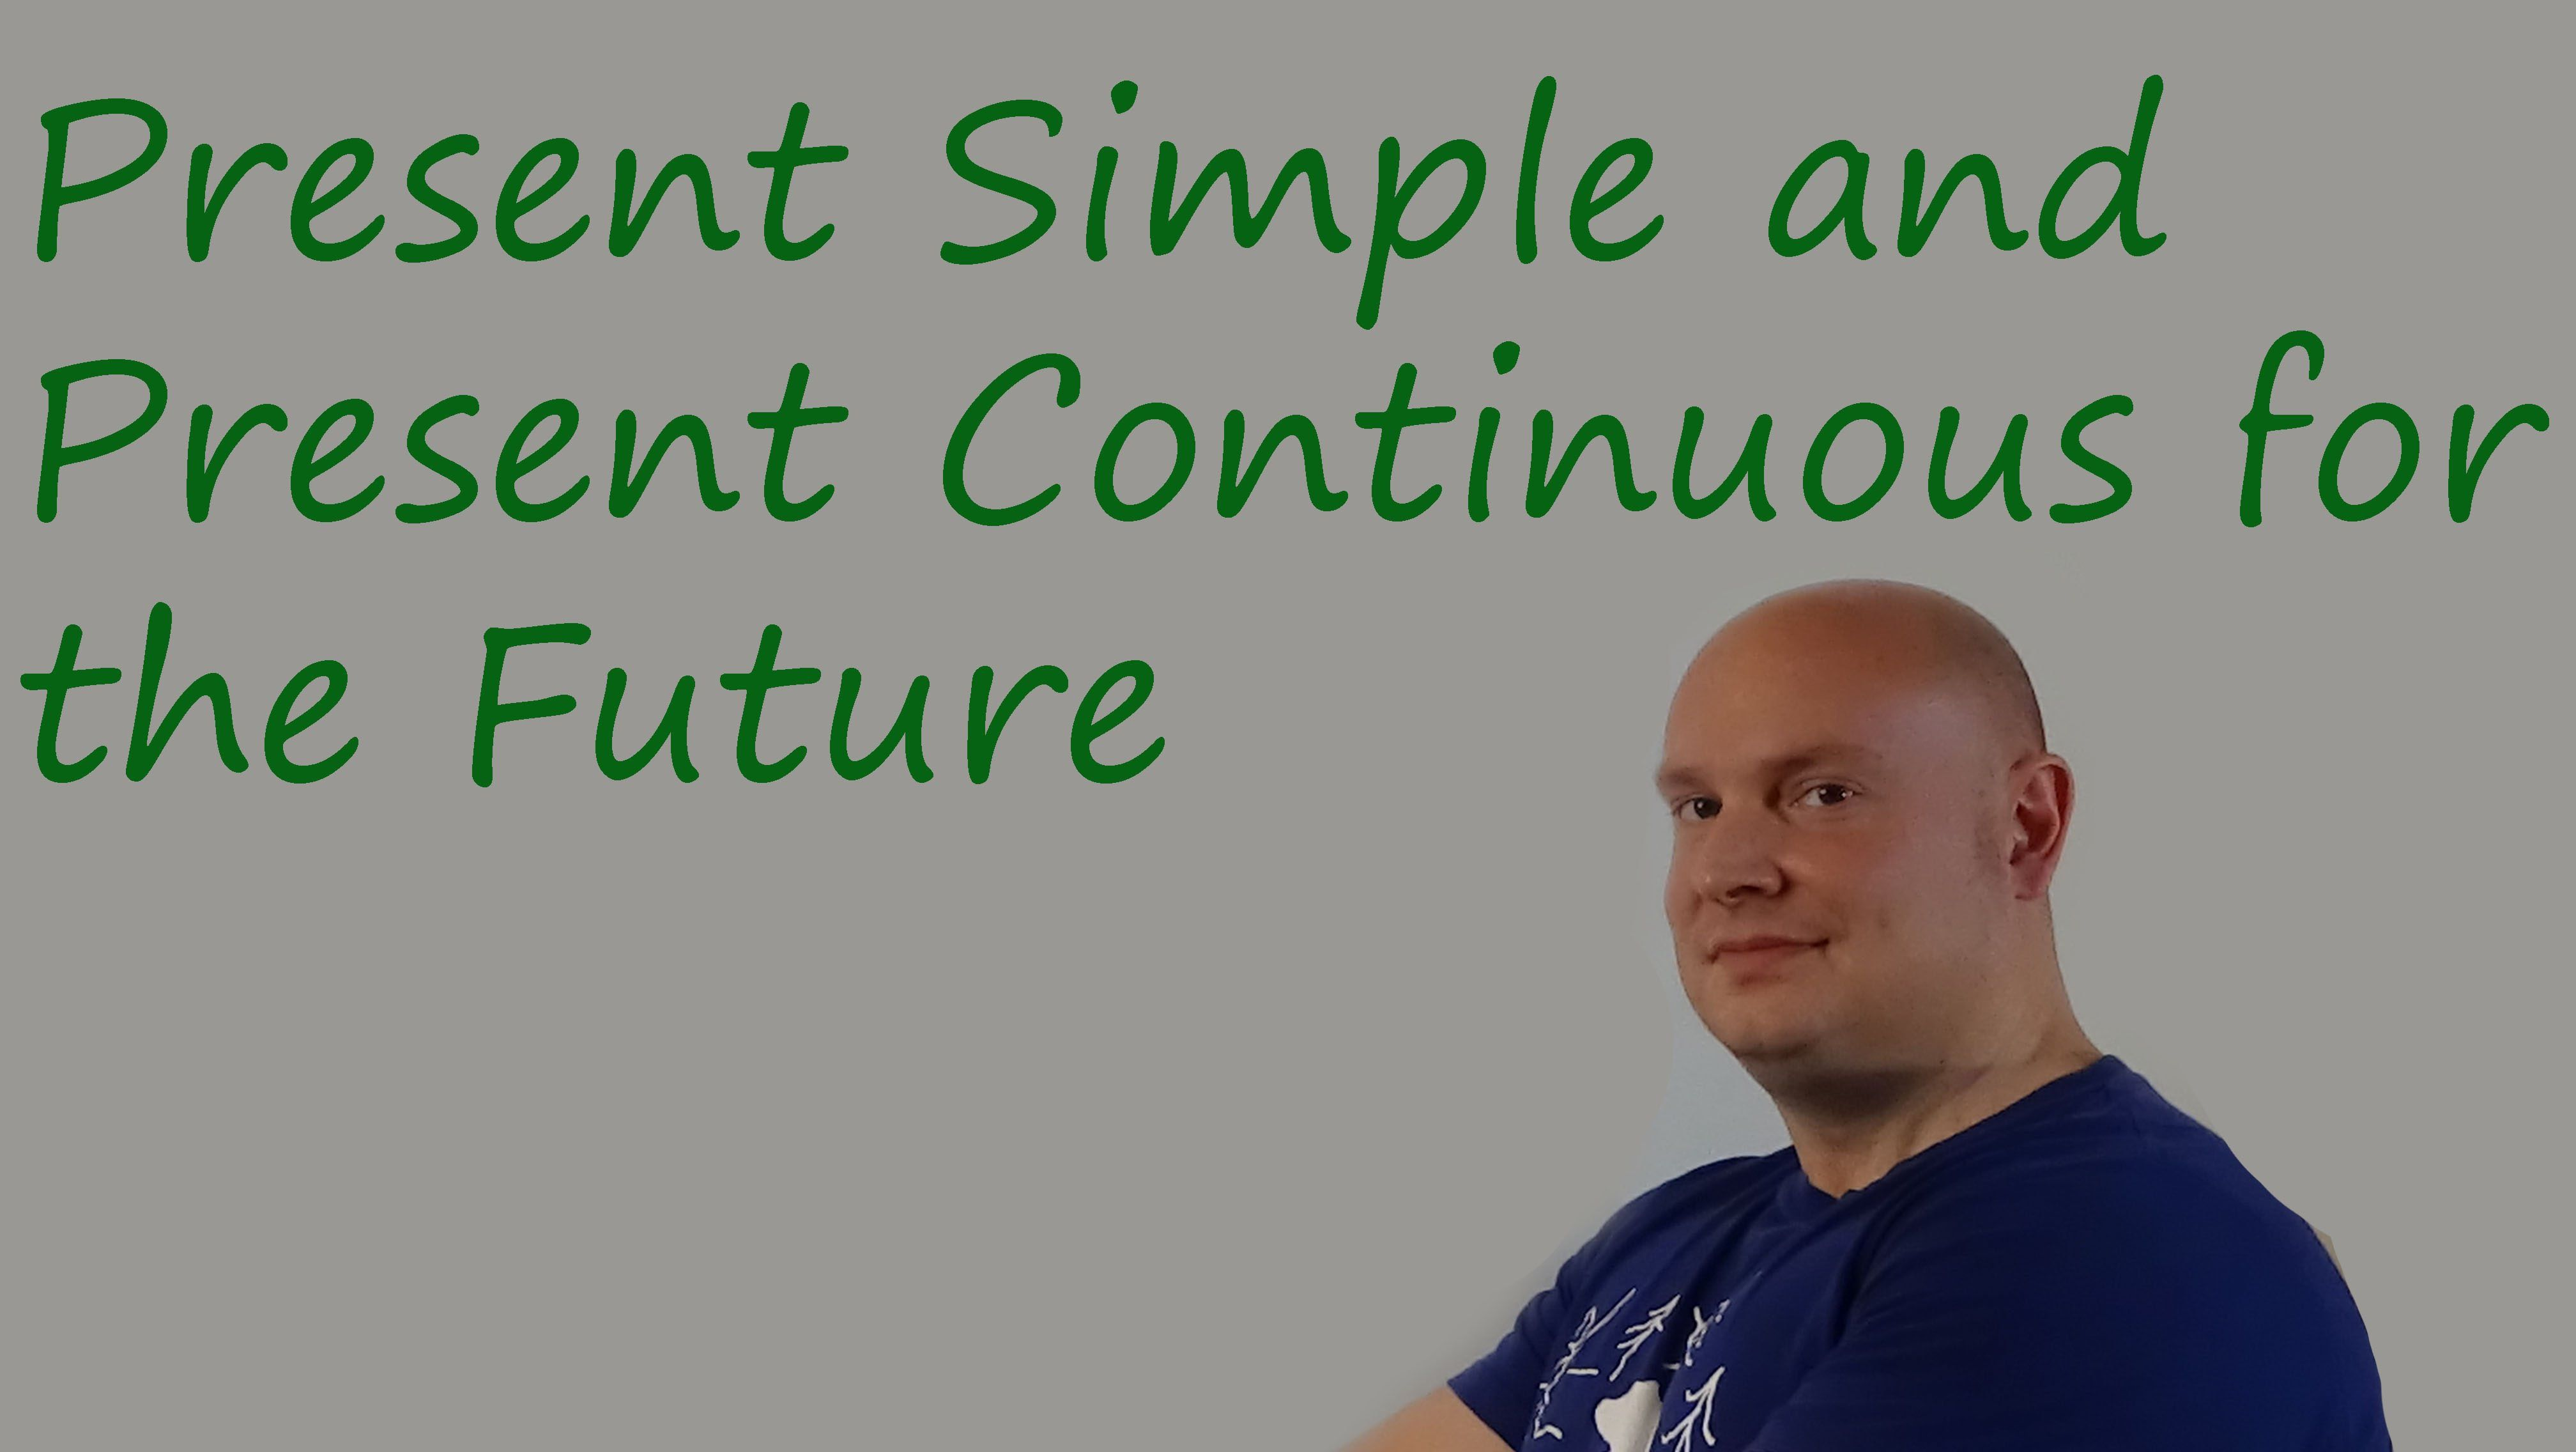 Present Simple And Present Continuous For The Future